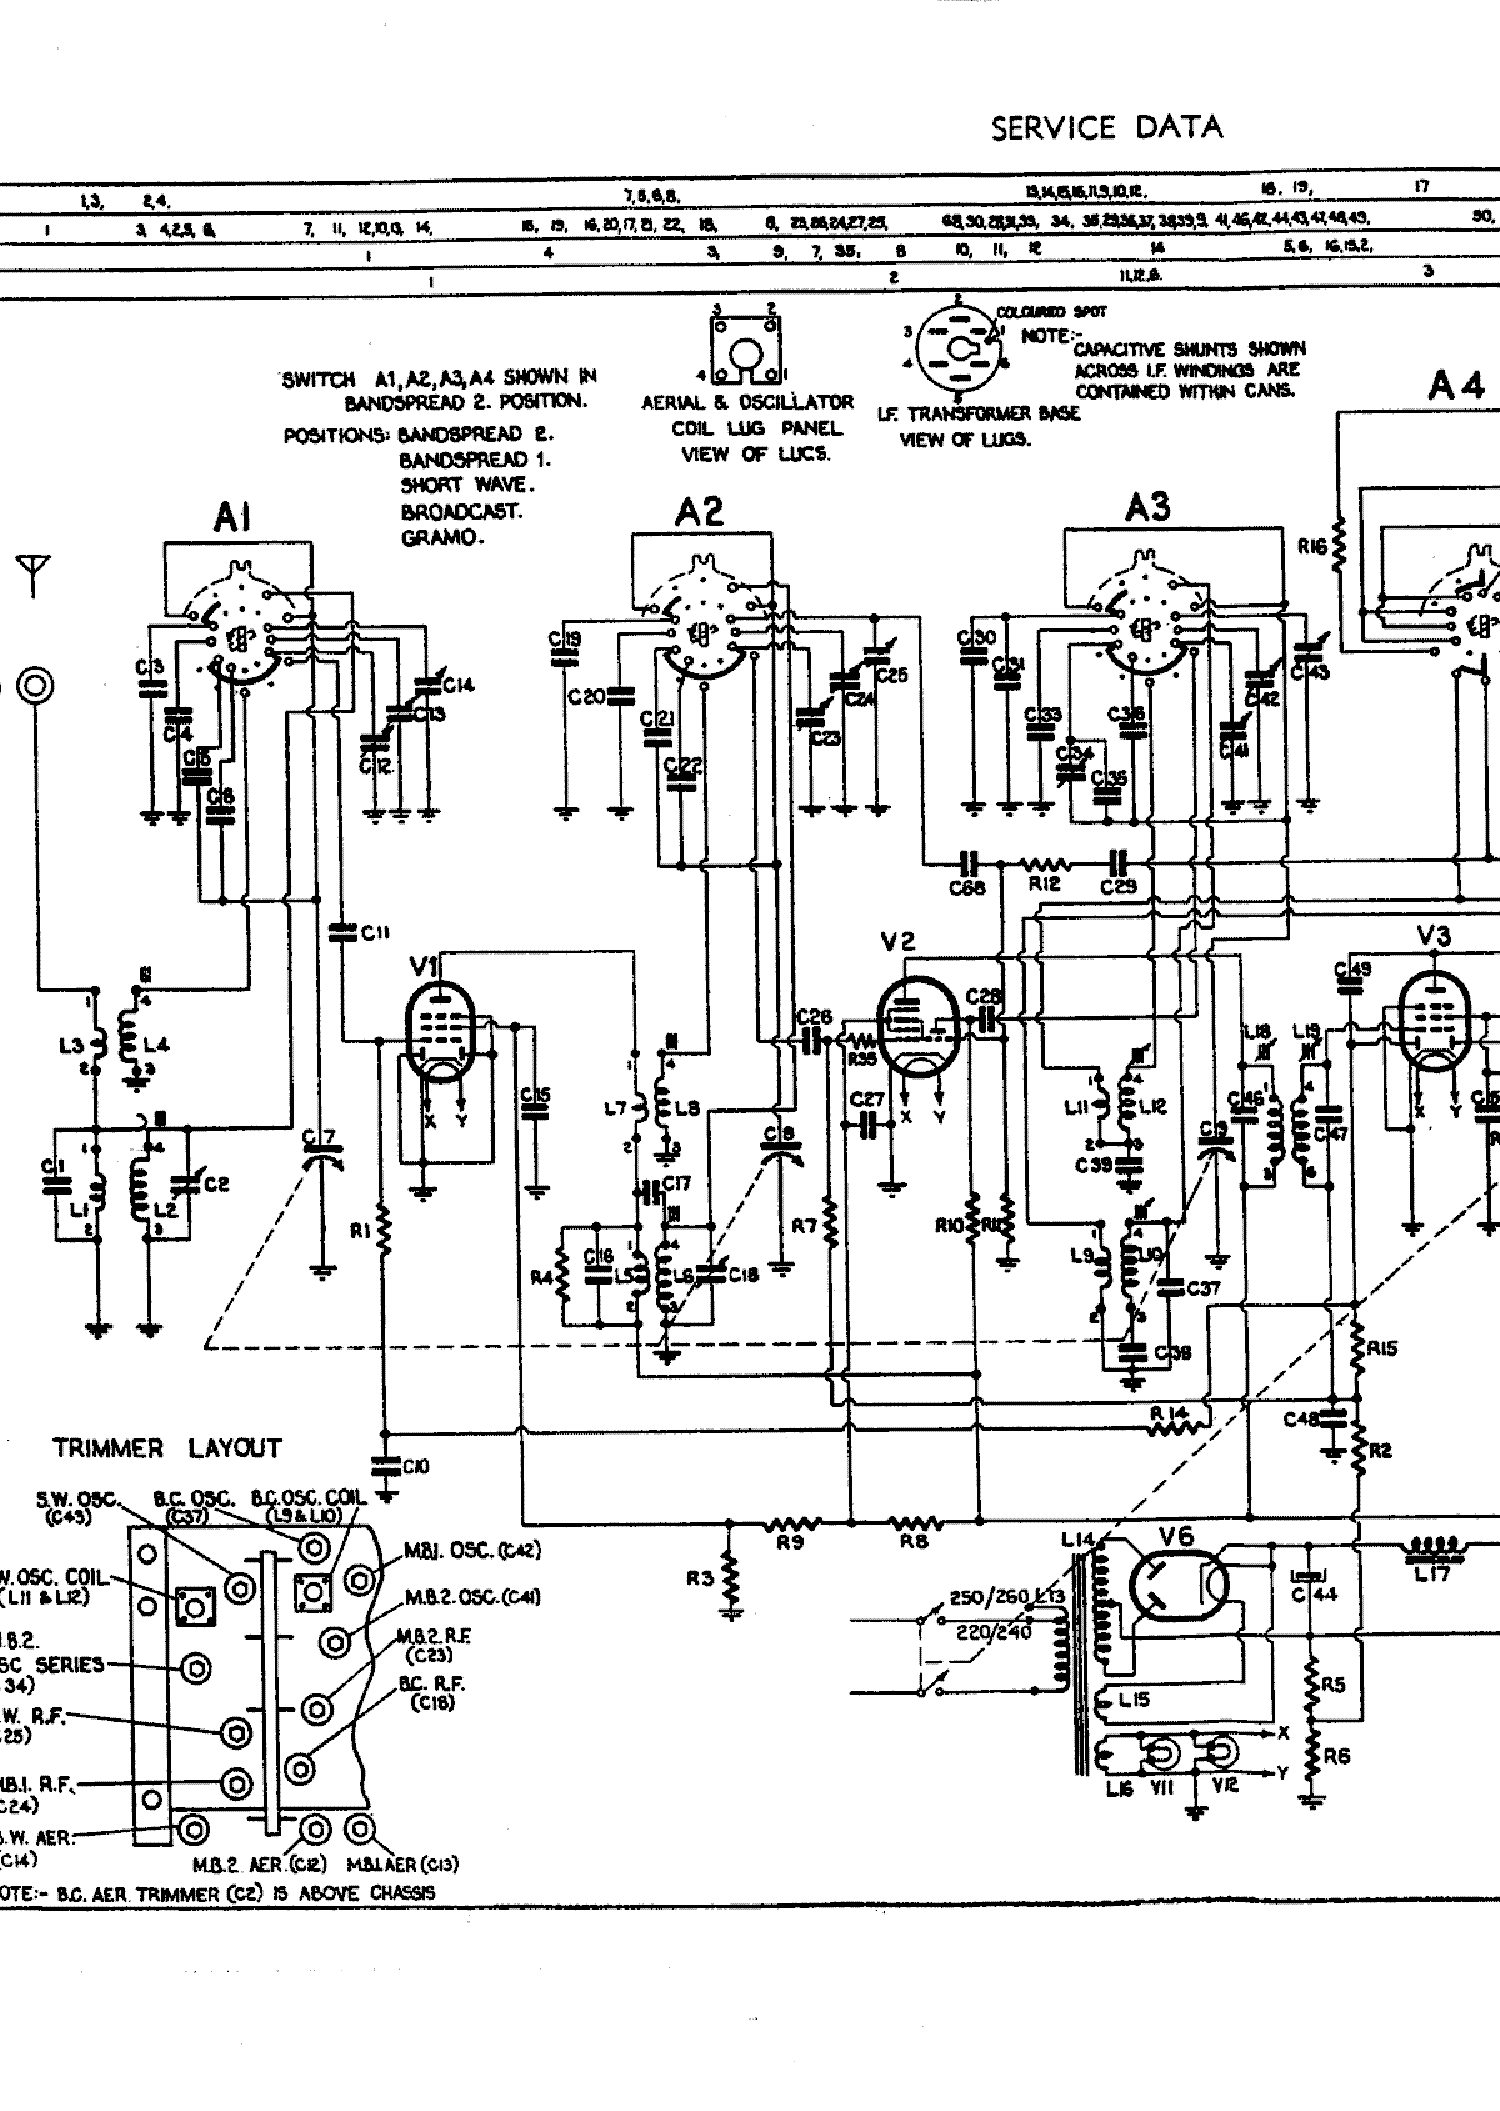 PHILIPS MCM906 Service Manual free download, schematics